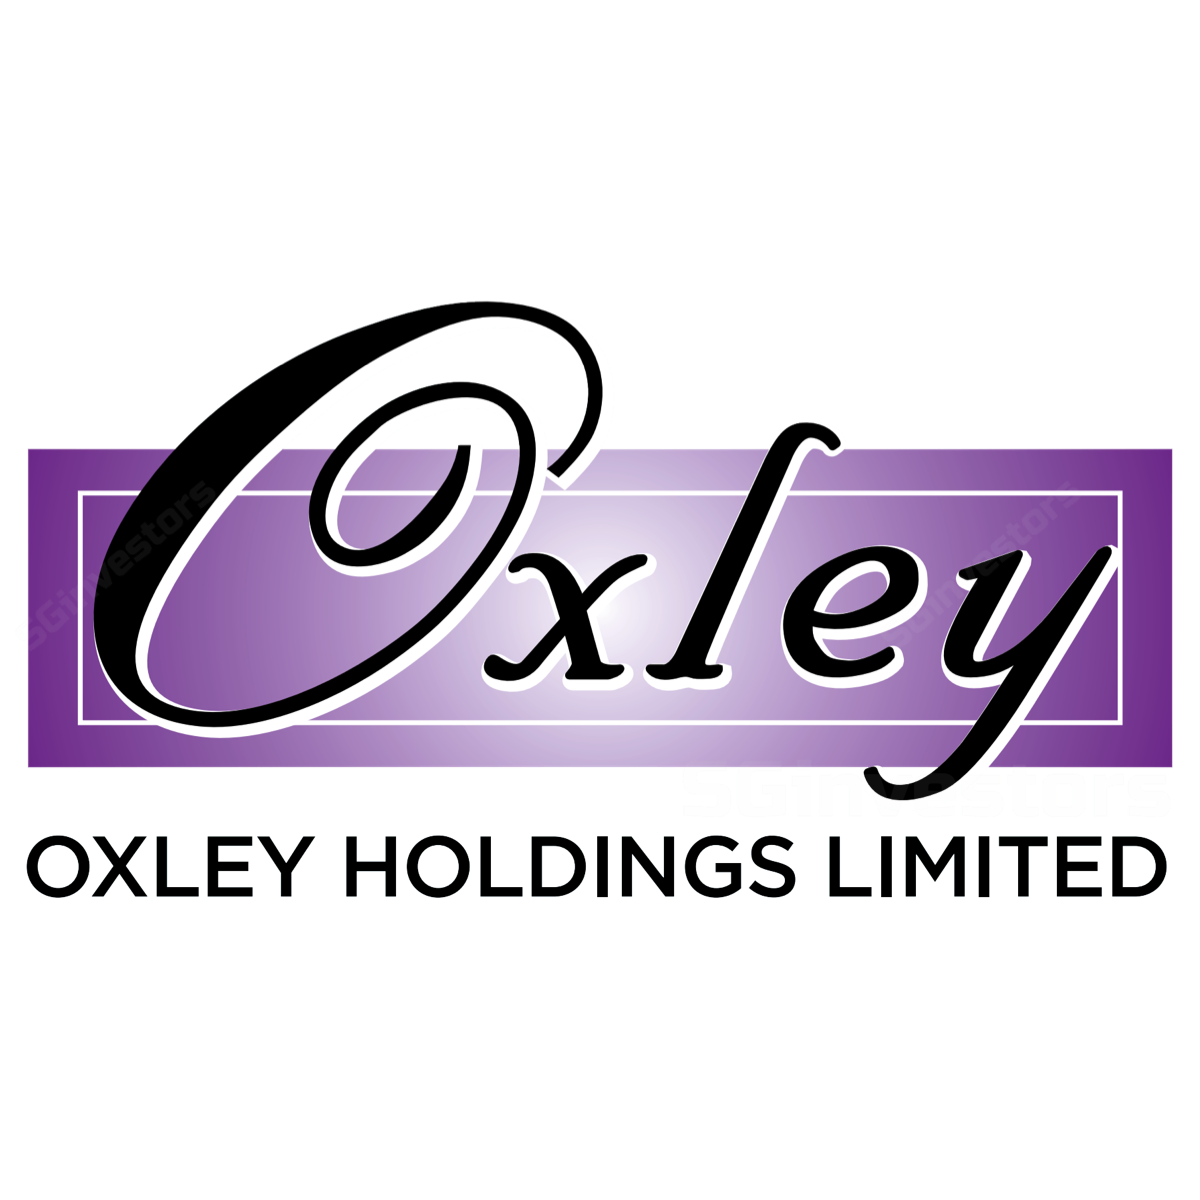 Oxley Holdings Limited - DBS Vickers 2018-04-23: Riding On Residential Tailwinds